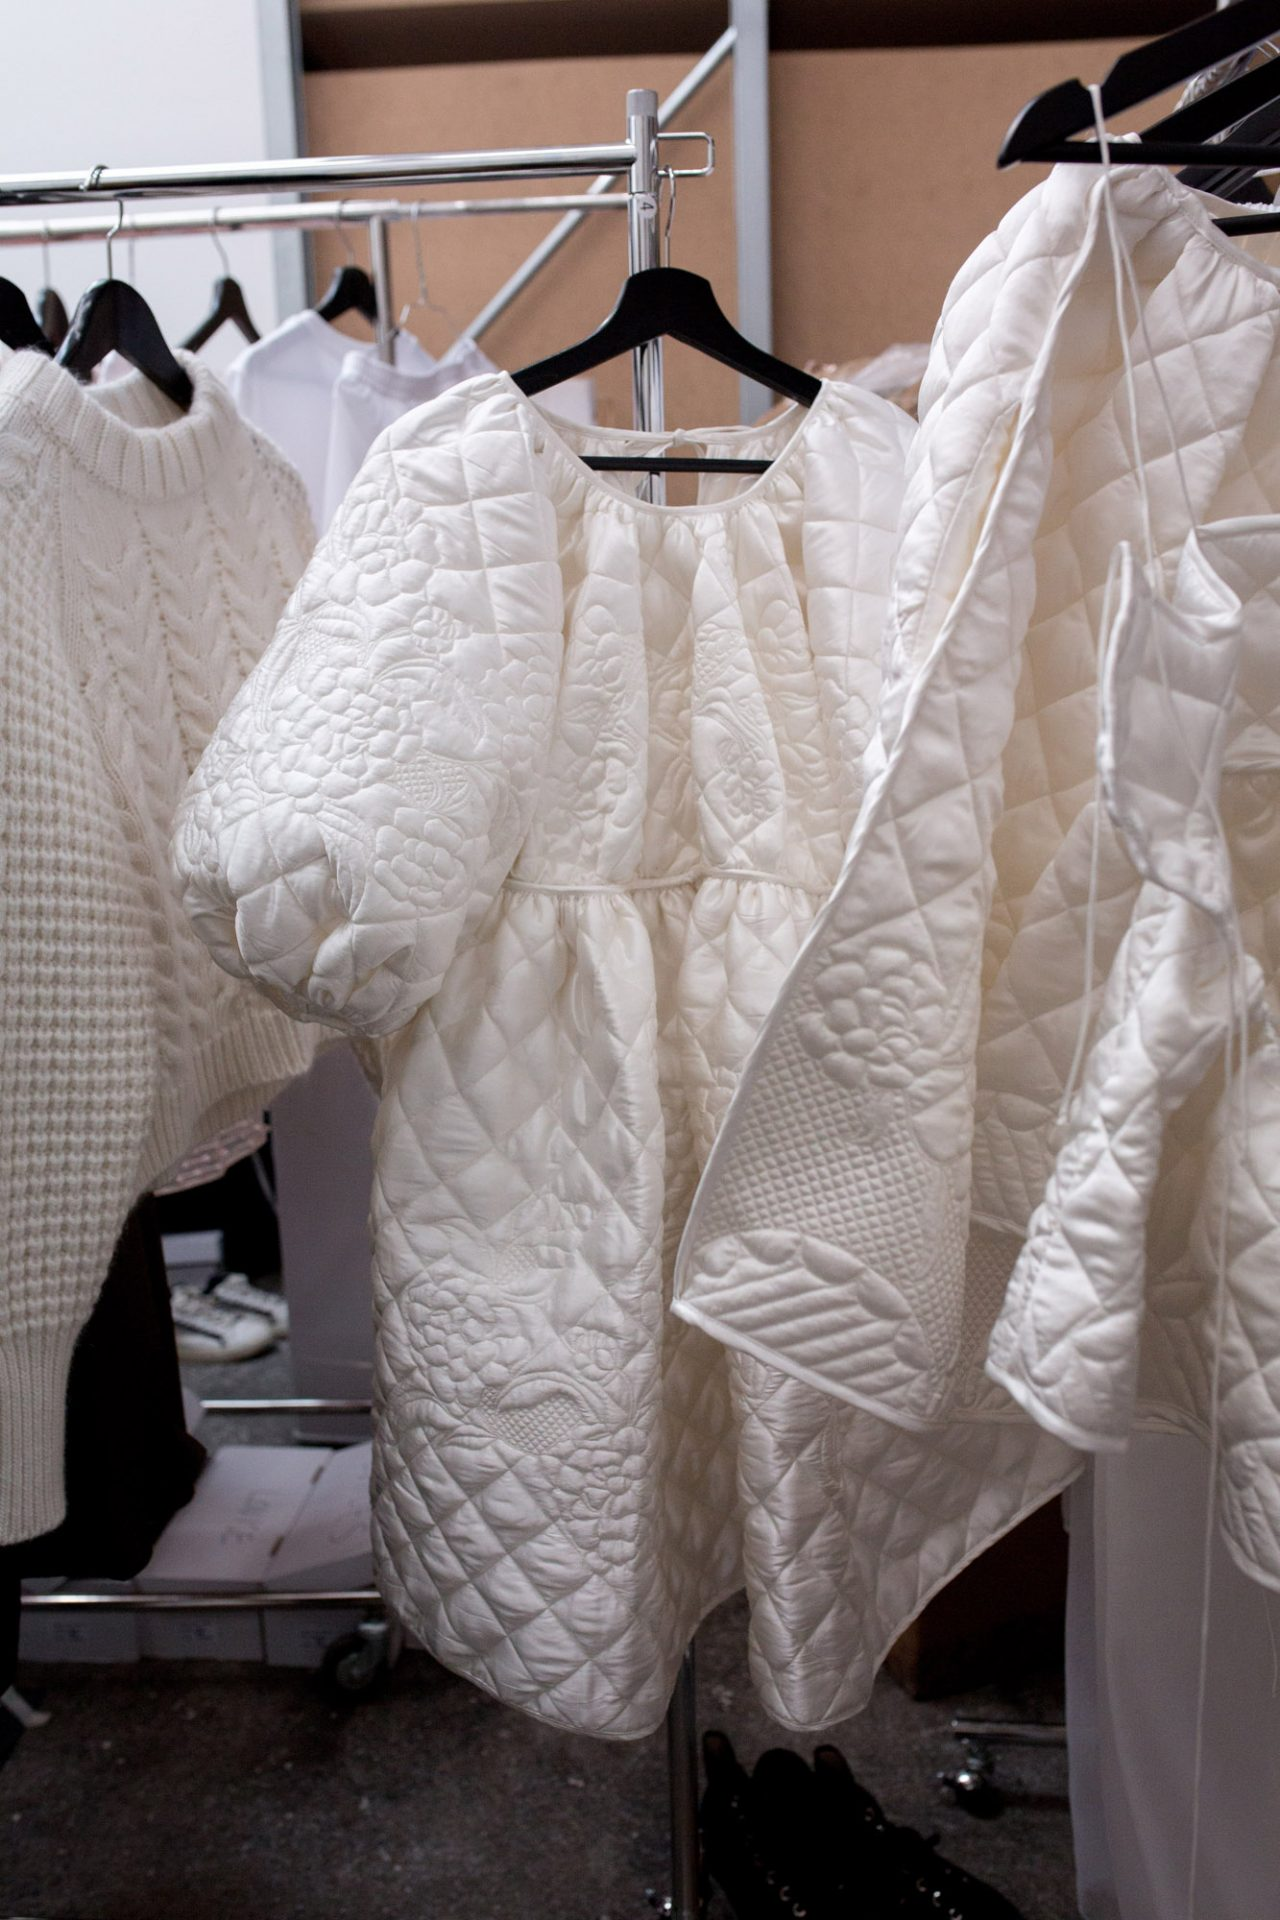 White quilted dresses hanging backstage from Cecilie Bahnsen AW18.